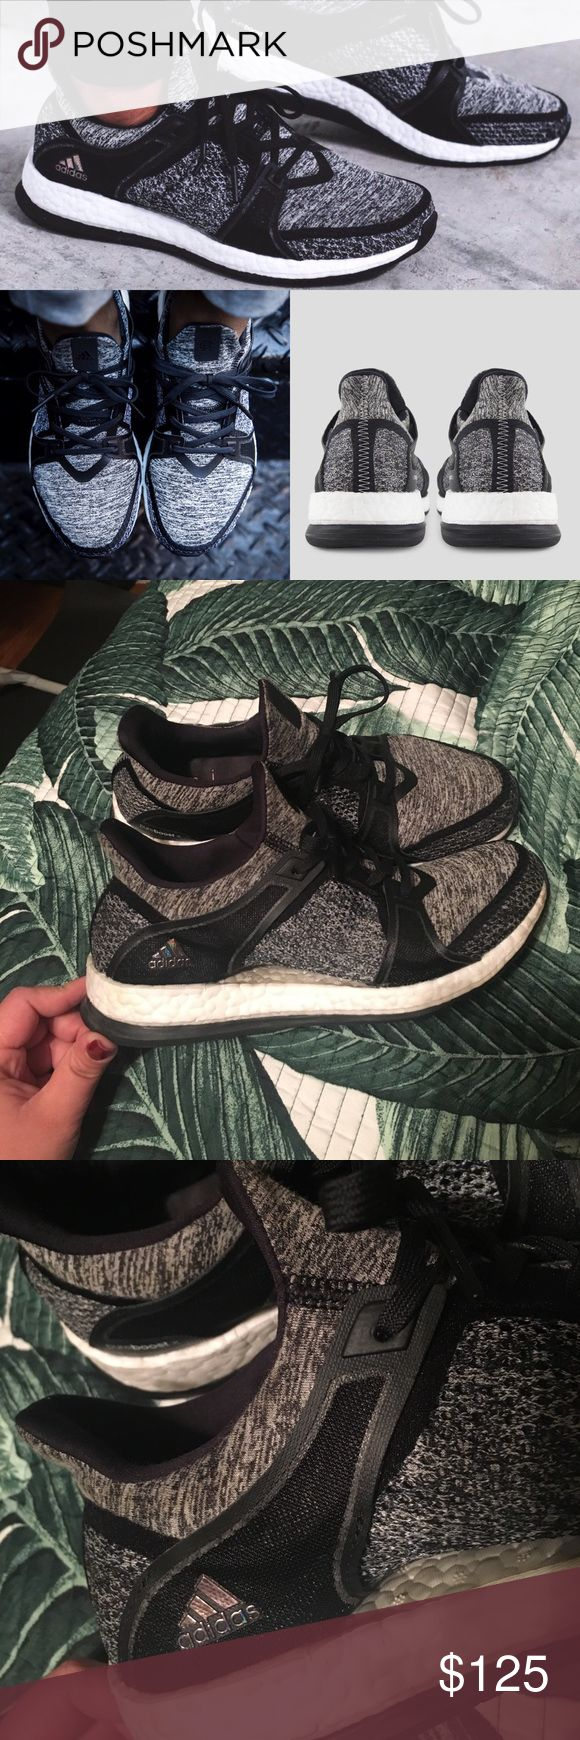 Adidas Pure Boost X Reigning Champ Beautiful and comfortable adidas trainers . Provide incredible comfort while being very cute . New condition only worn a handful of times ! Great used condition , limited edition style! Adidas Shoes Athletic Shoes